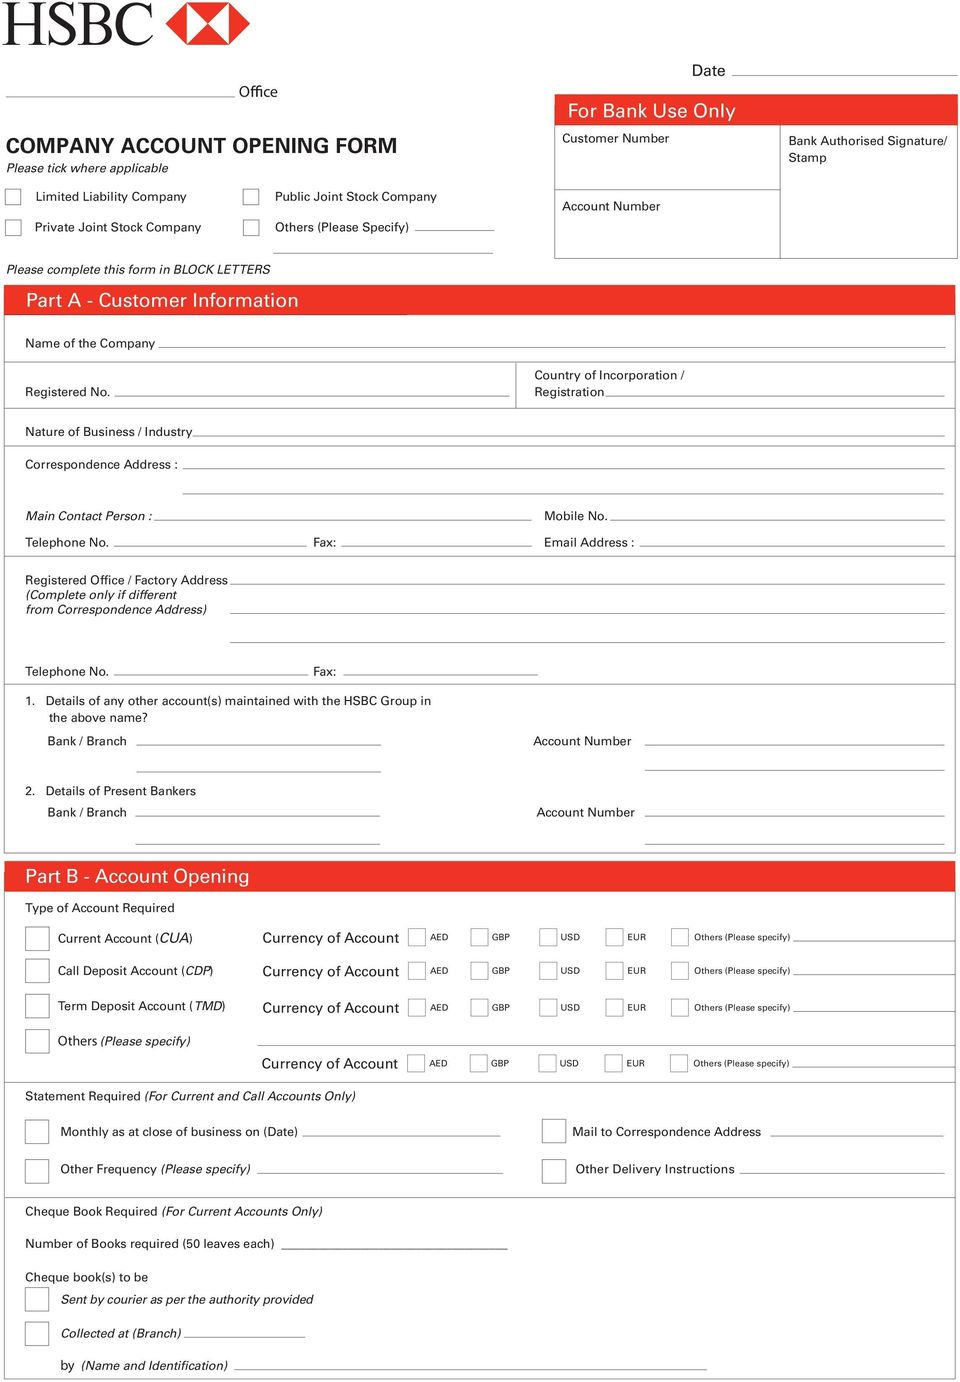 Company Account Opening Form - PDF